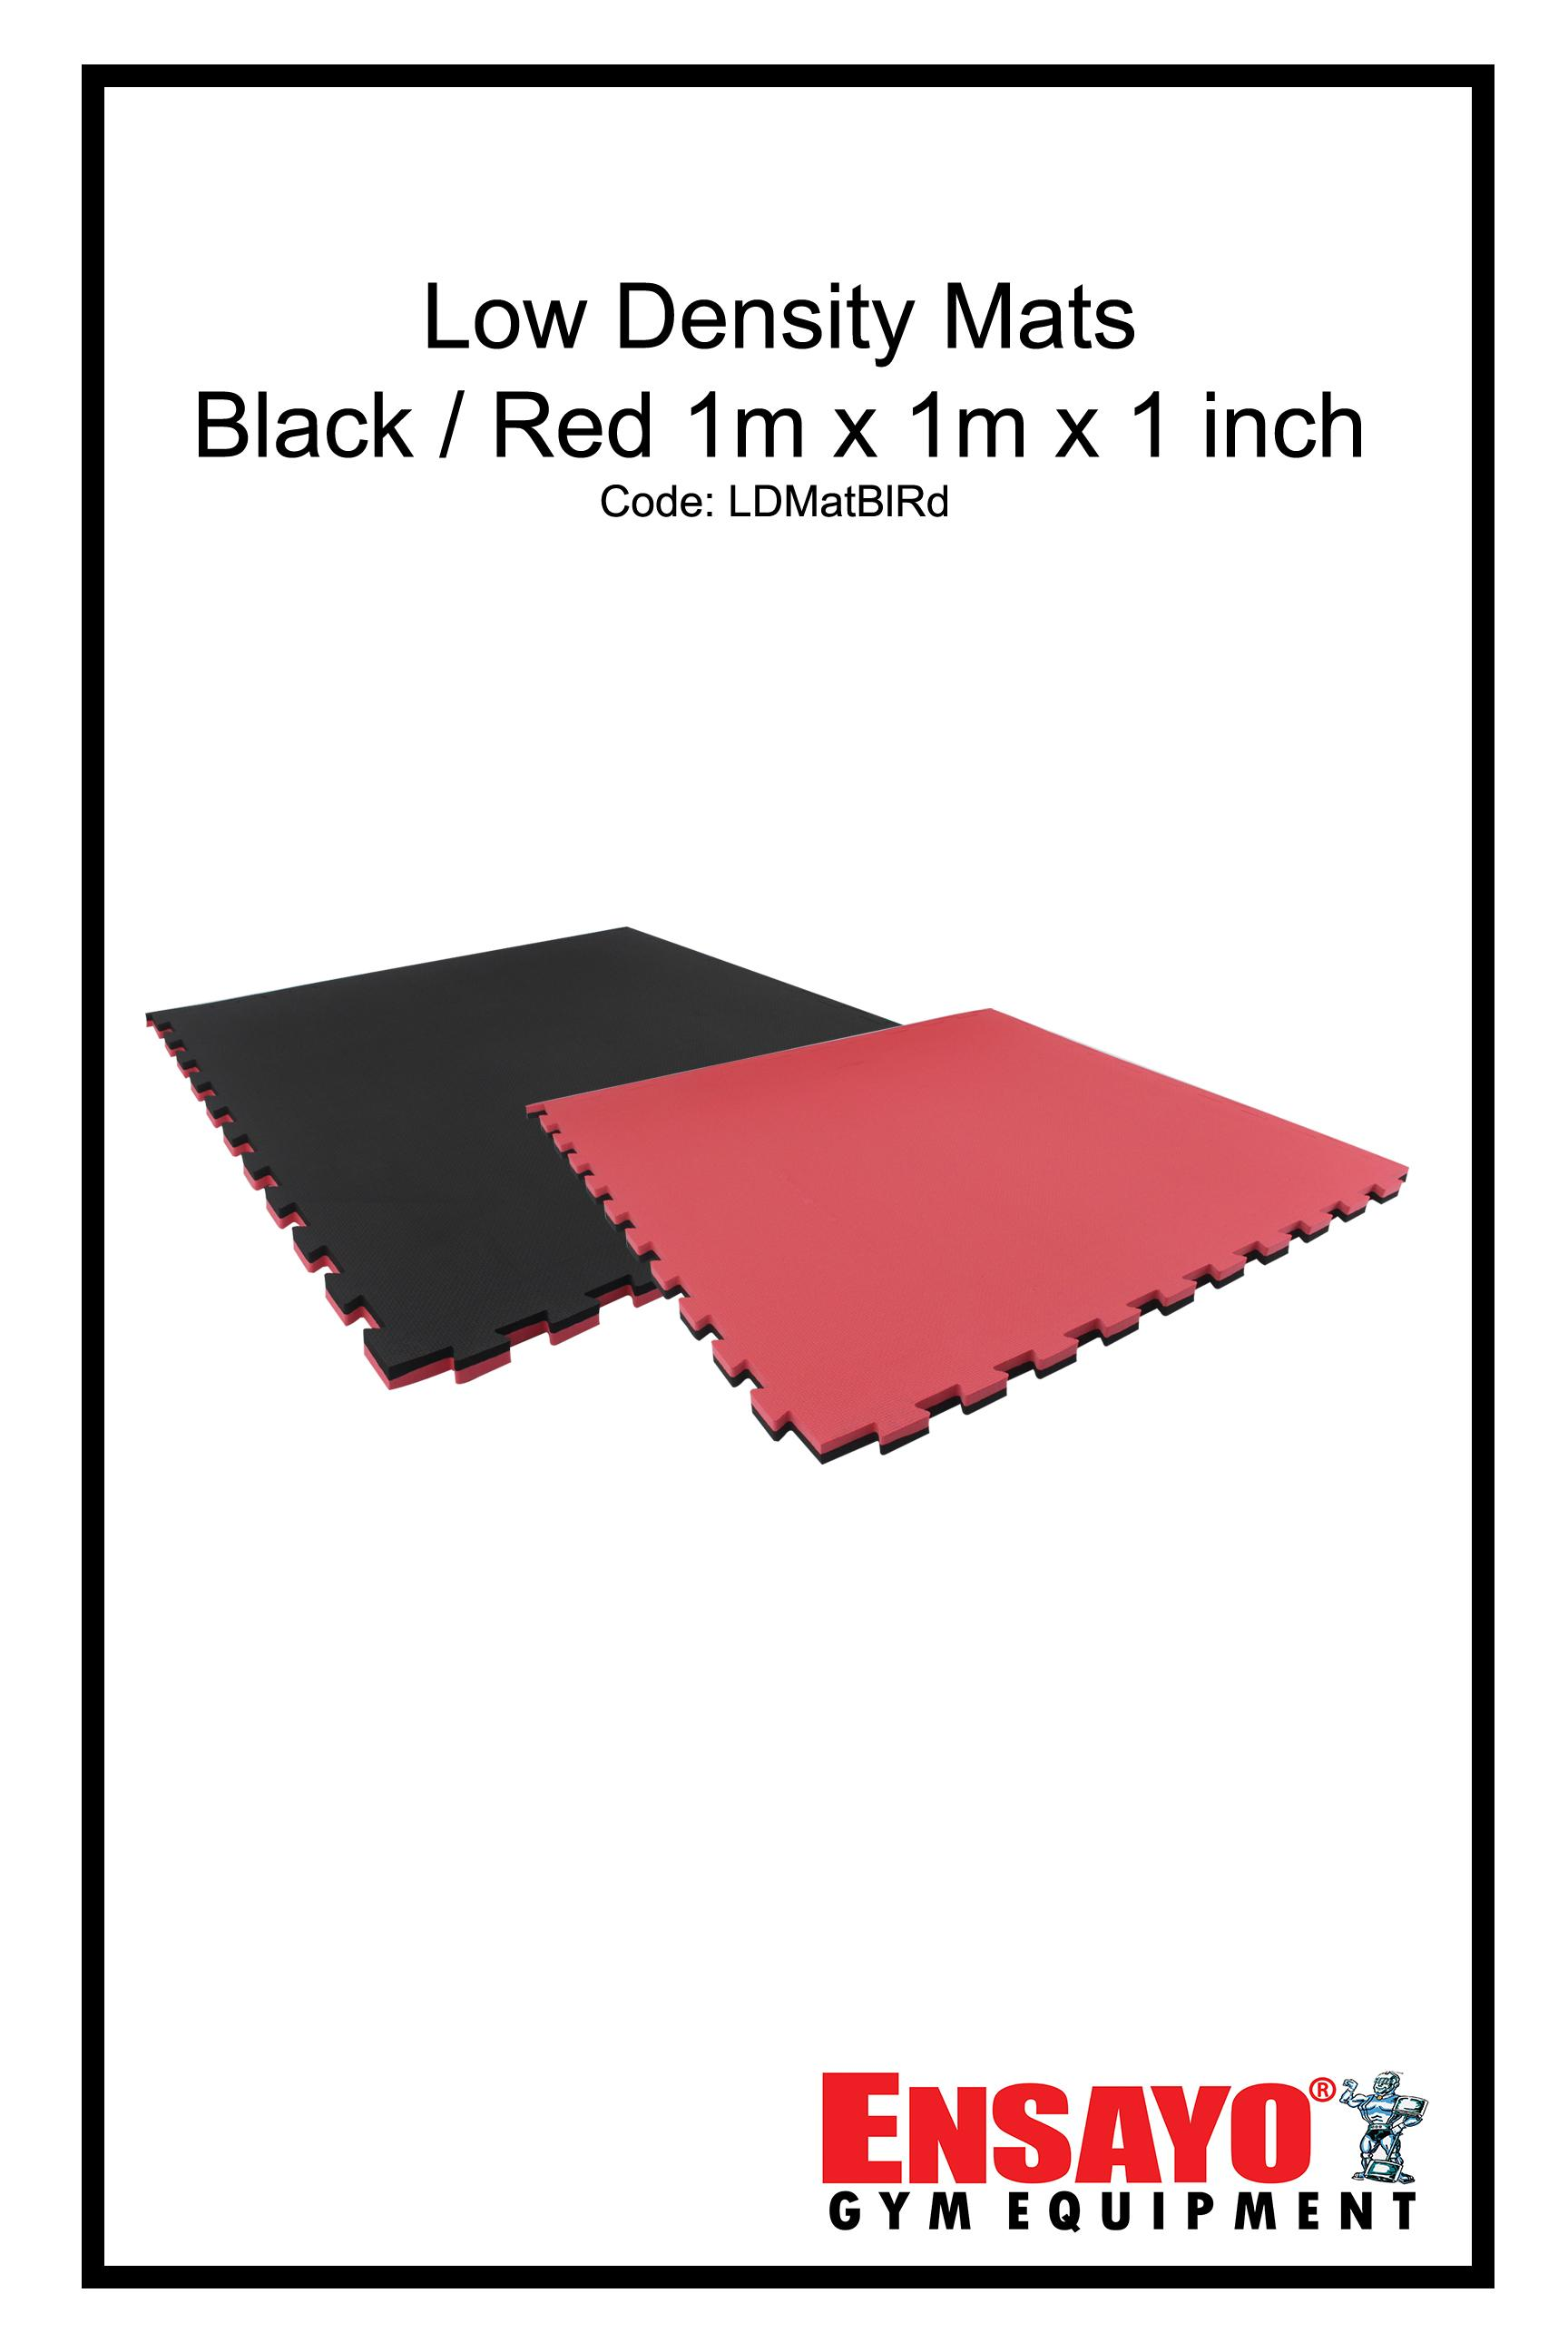 Ensayo Low Density Mats Black/red 1x1 Meter X1-Inch Best Home/commercial Gym Use(exercise/workout/judo/gymnastics/jiu-Jitsu/yoga/grappling/strength/training/aerobic);high Quality 1m Soft Adjustable Puzzle Flooring For Dumbbell/bench/kettle Bell/bars By Ensayo Gym Equipment.